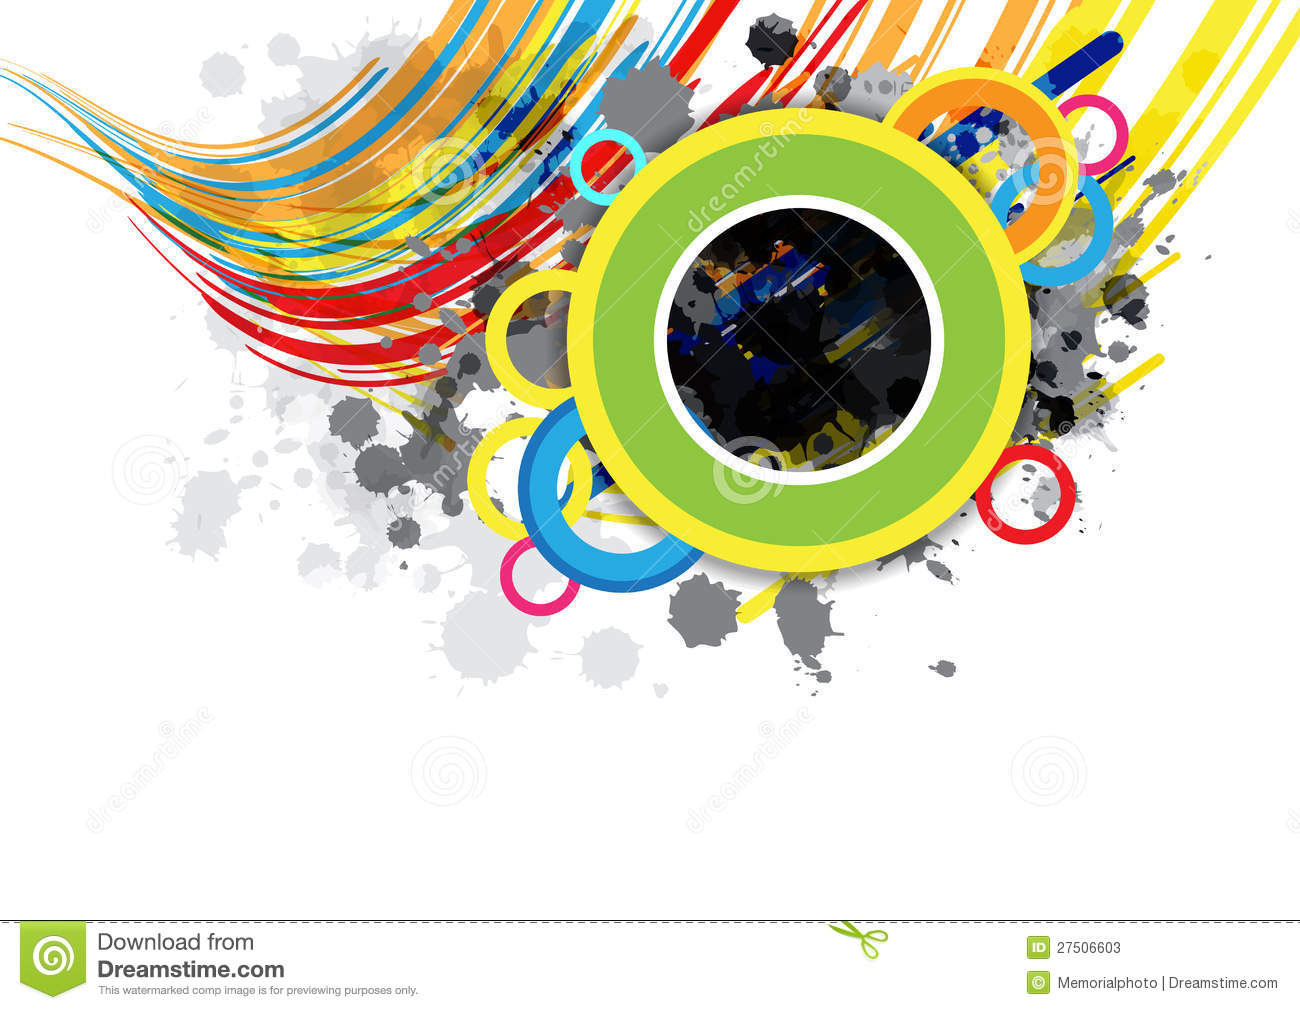 Colorful Art Abstract Background Design Stock Photos Image 27506603 throughout Abstract Circle Background Art Design